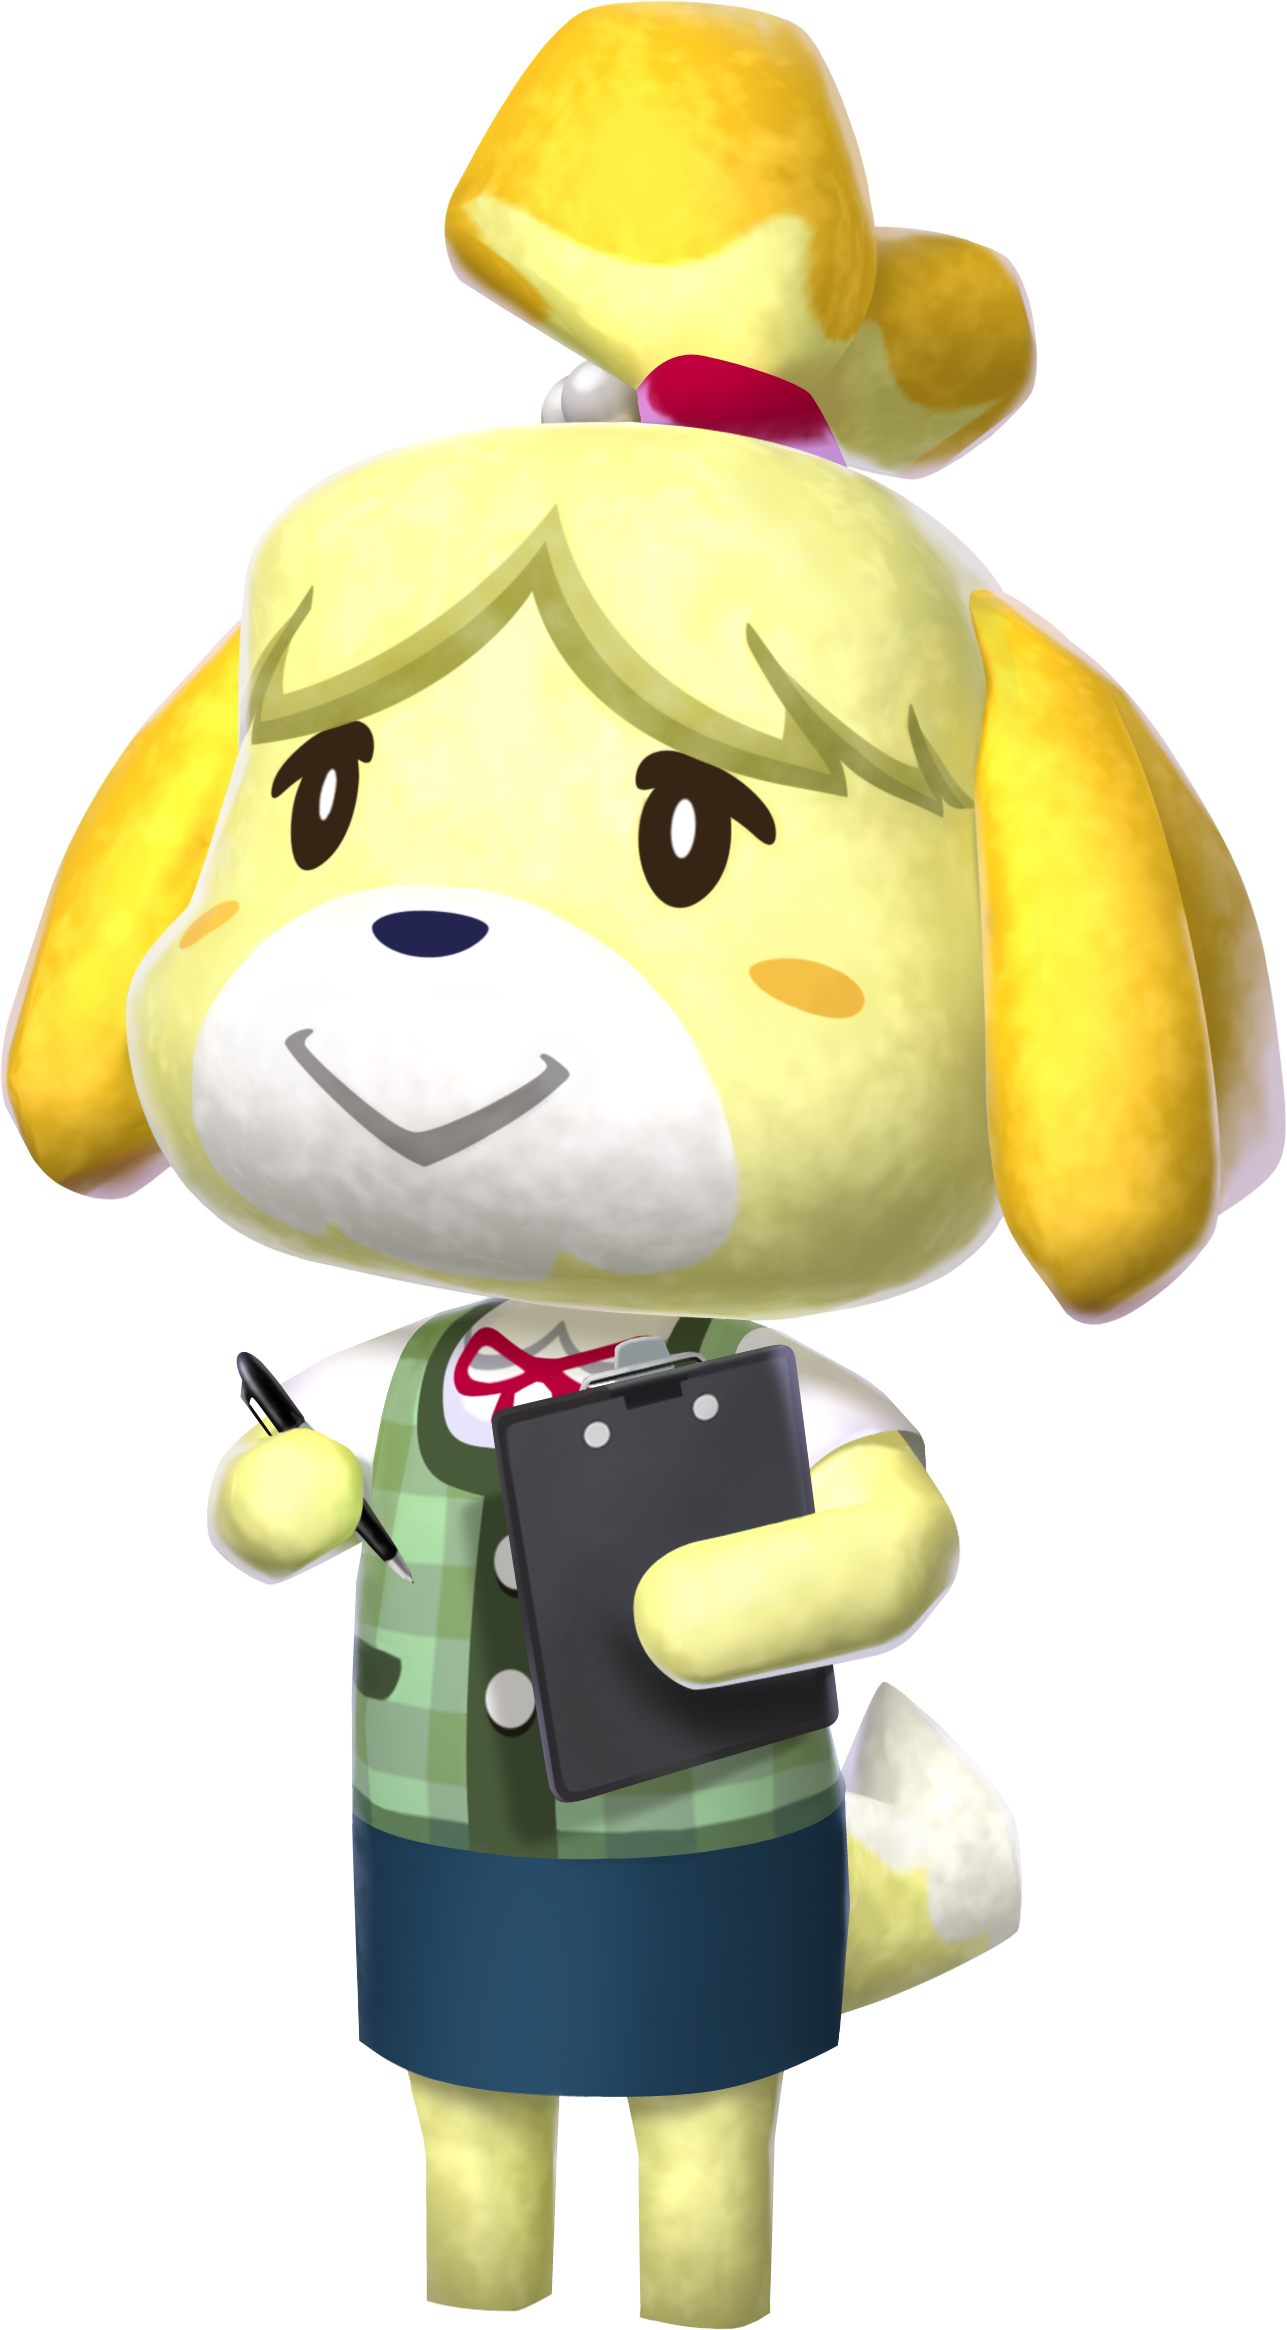 Animal crossing png. Image isabelle wiki fandom